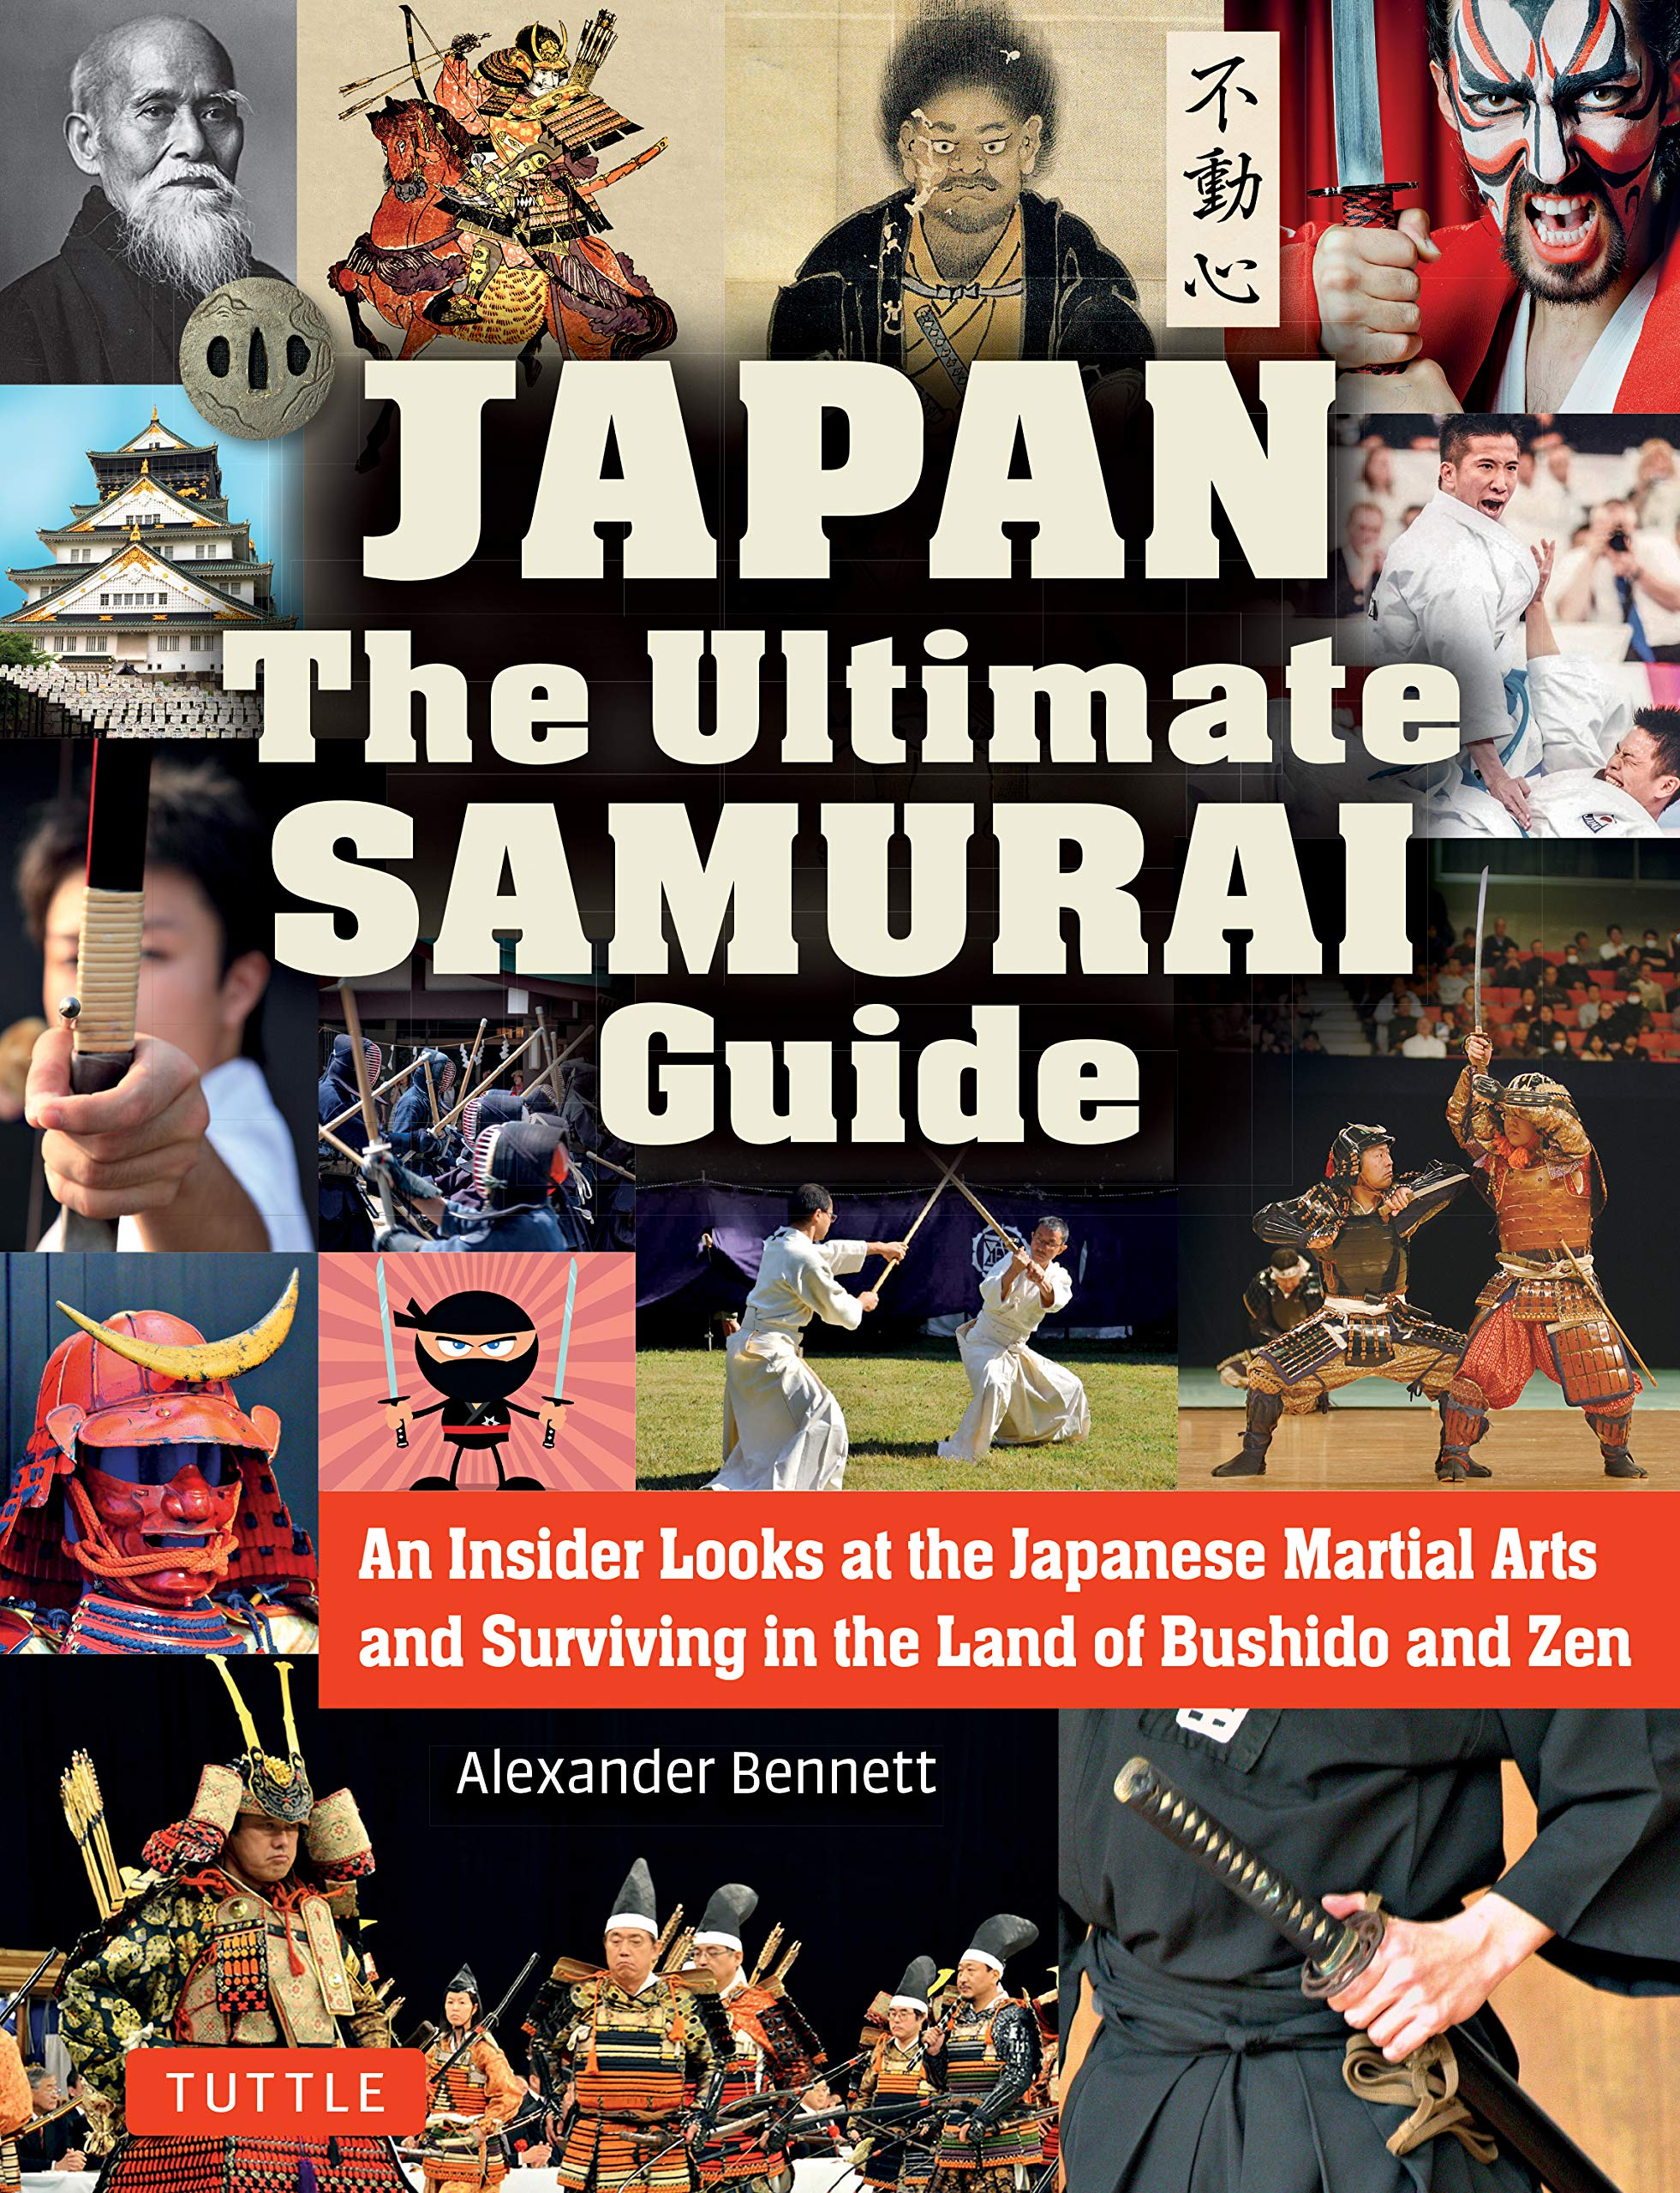 The Japan The Ultimate Samurai Guide: An Insider Looks at ...